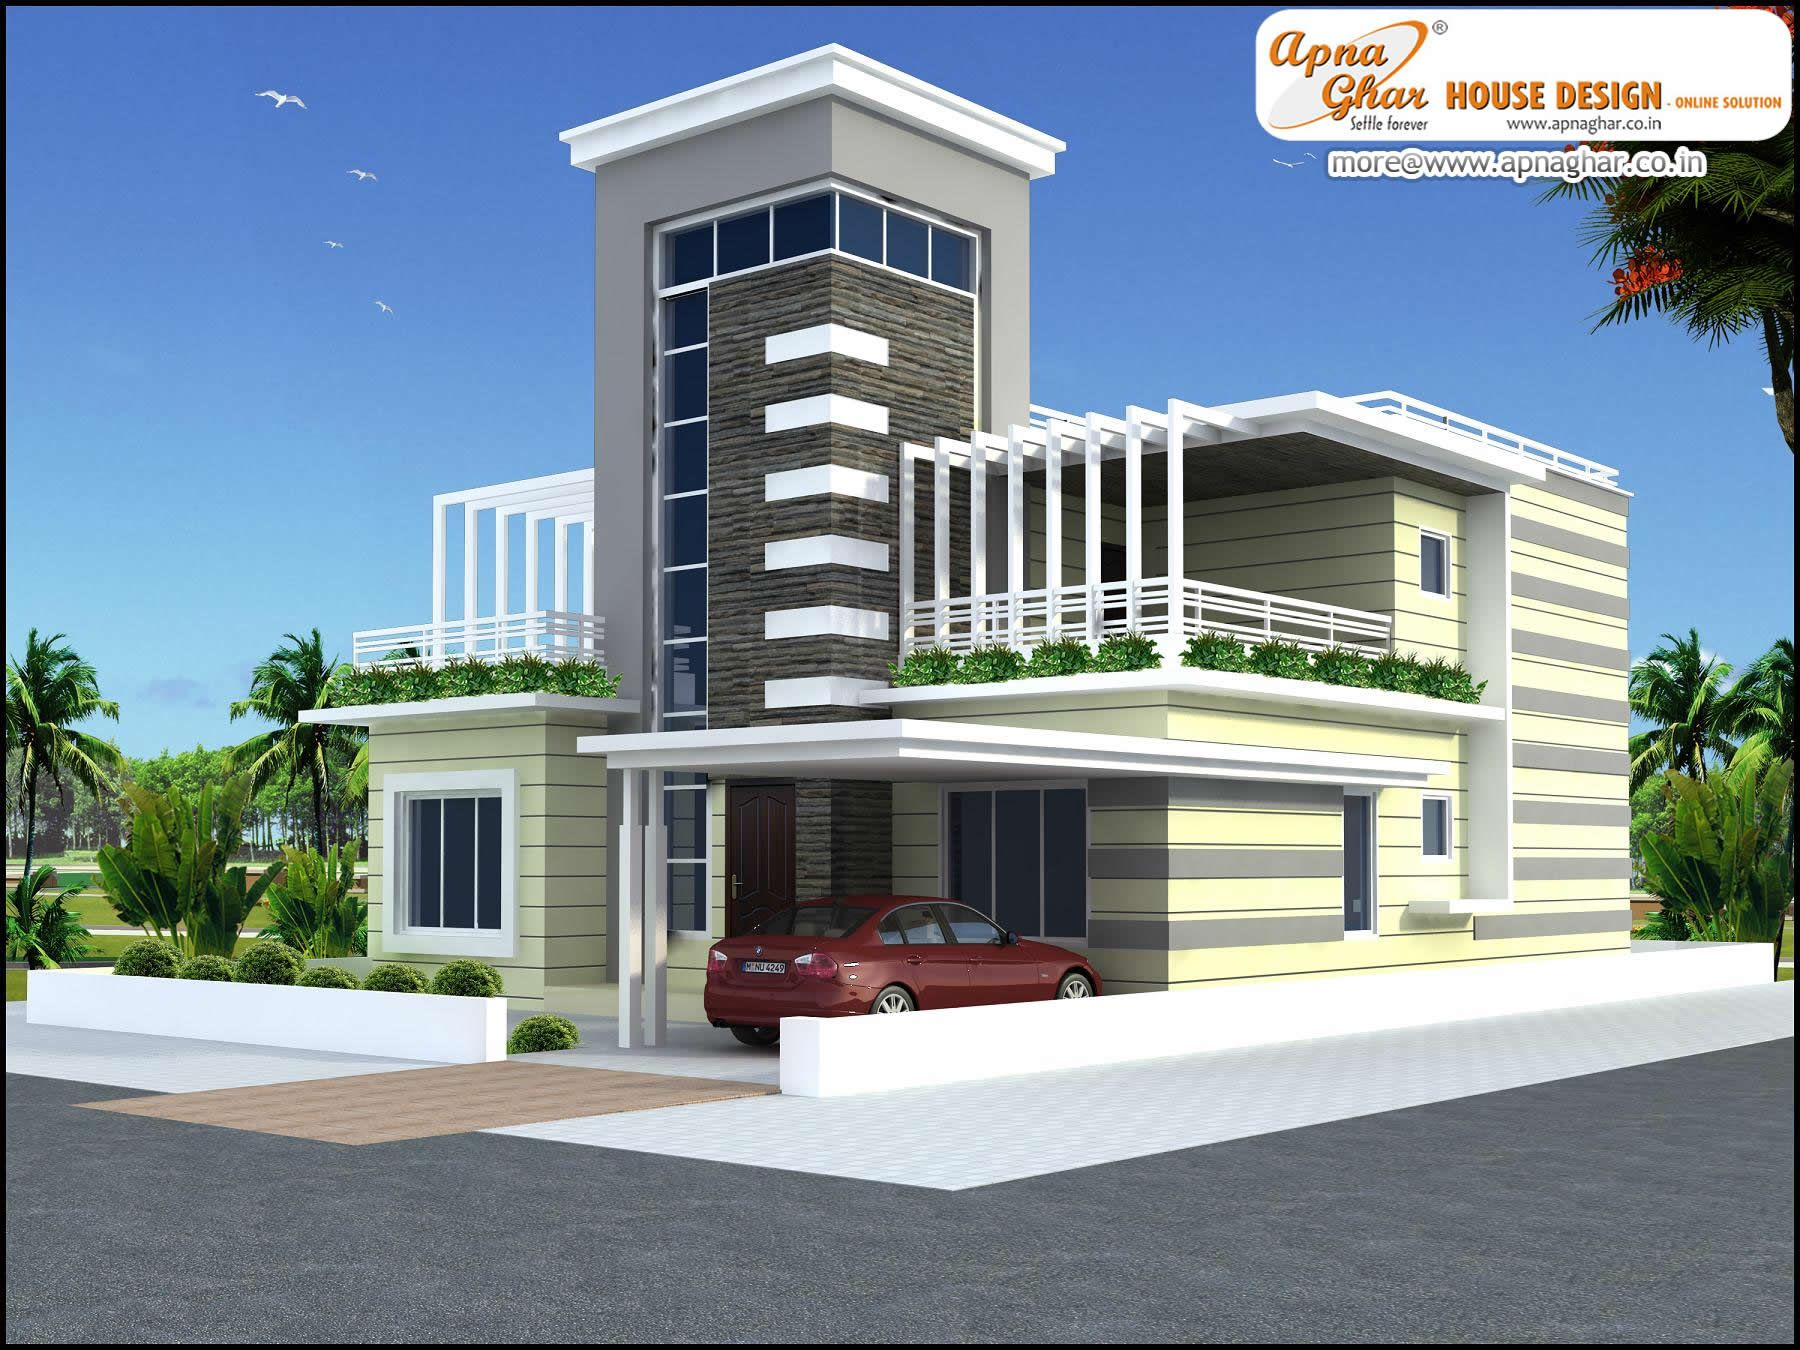 4 bedroom duplex 2 floor house design area 252m2 21m for 4 bedroom duplex design